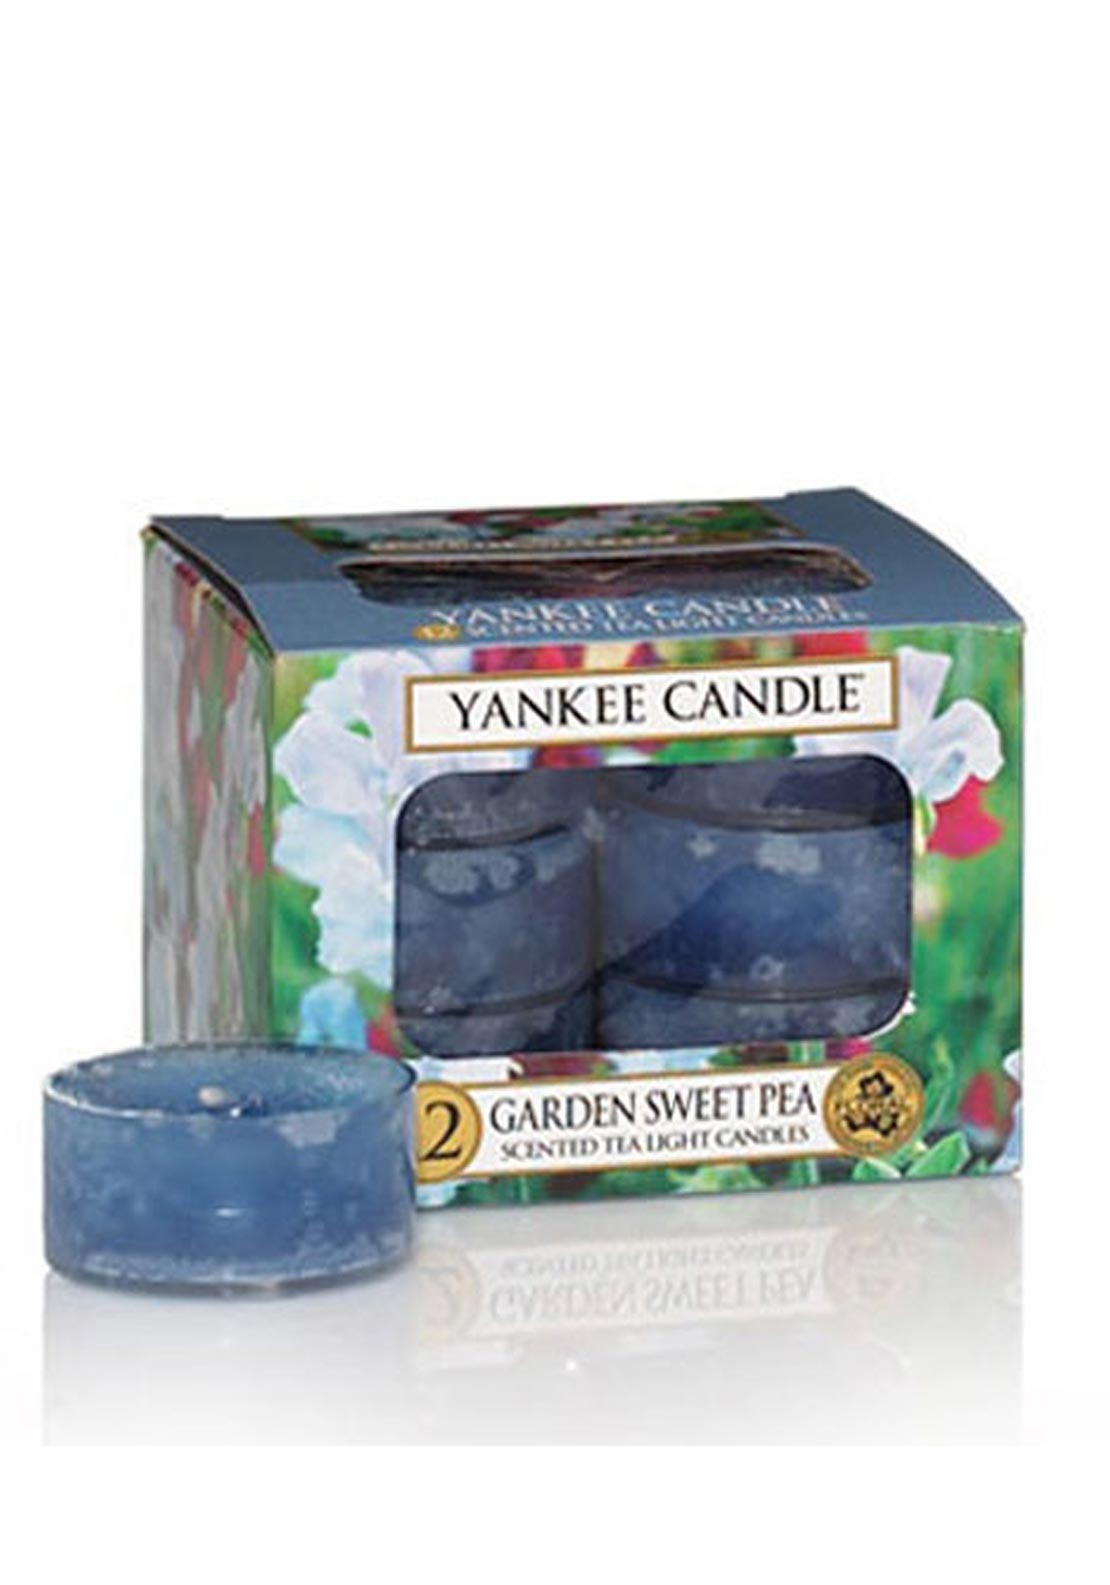 Yankee Candle 12 Scented Tea Light Candles, Garden Sweet Pea